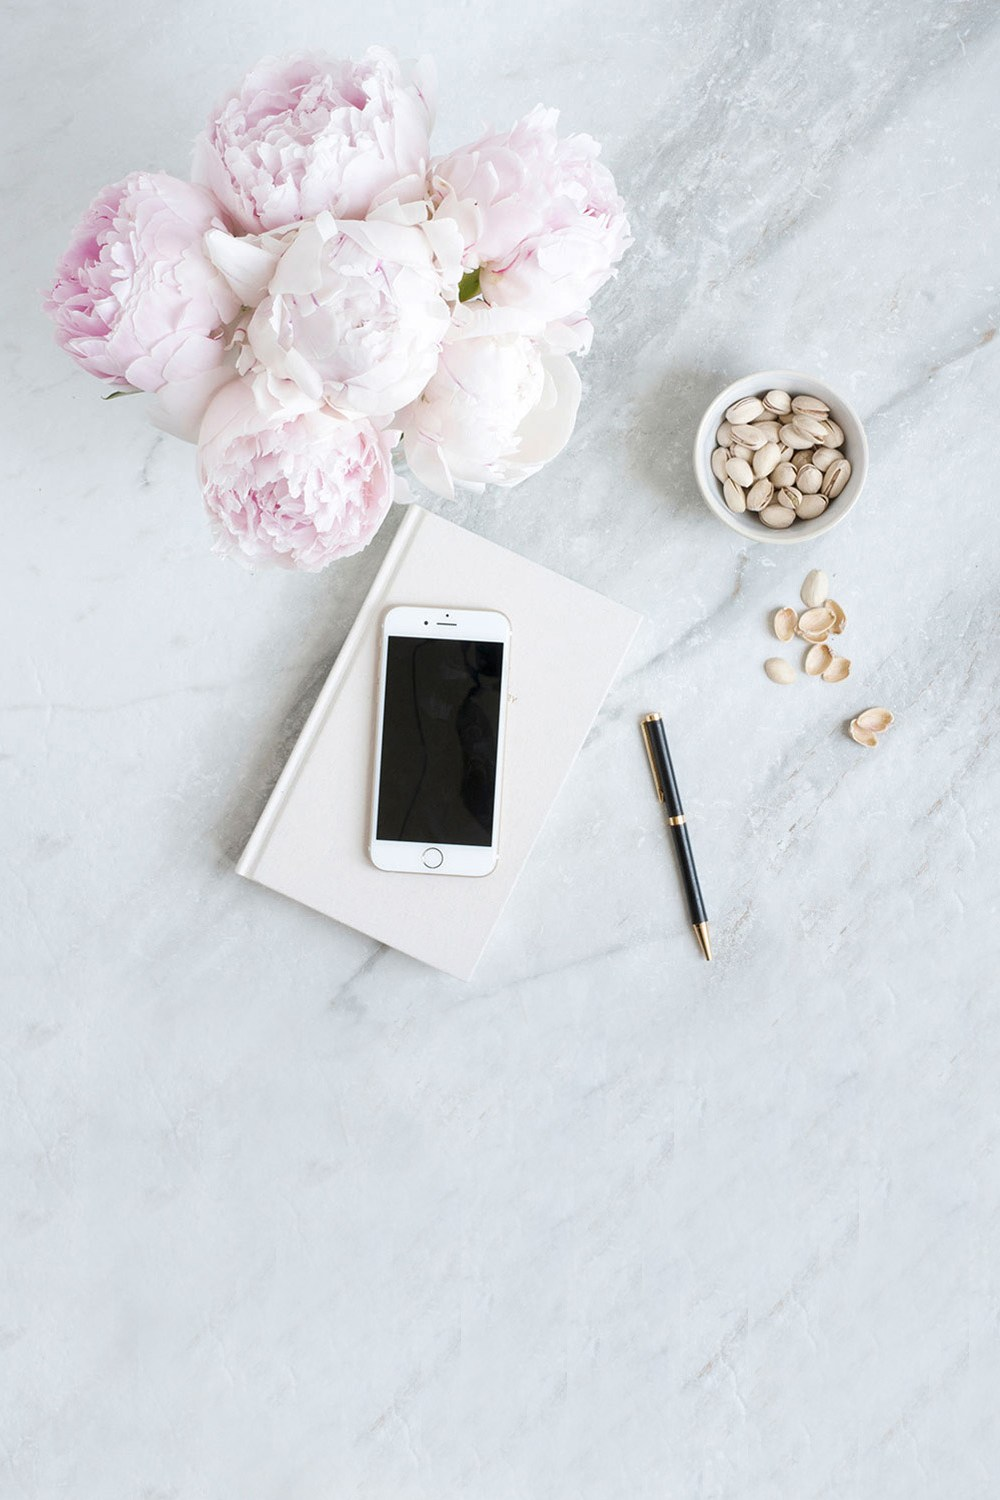 lifestyle designer pivoine iPhone carnet notebook crayon graphiste gourmandise marbre tendances